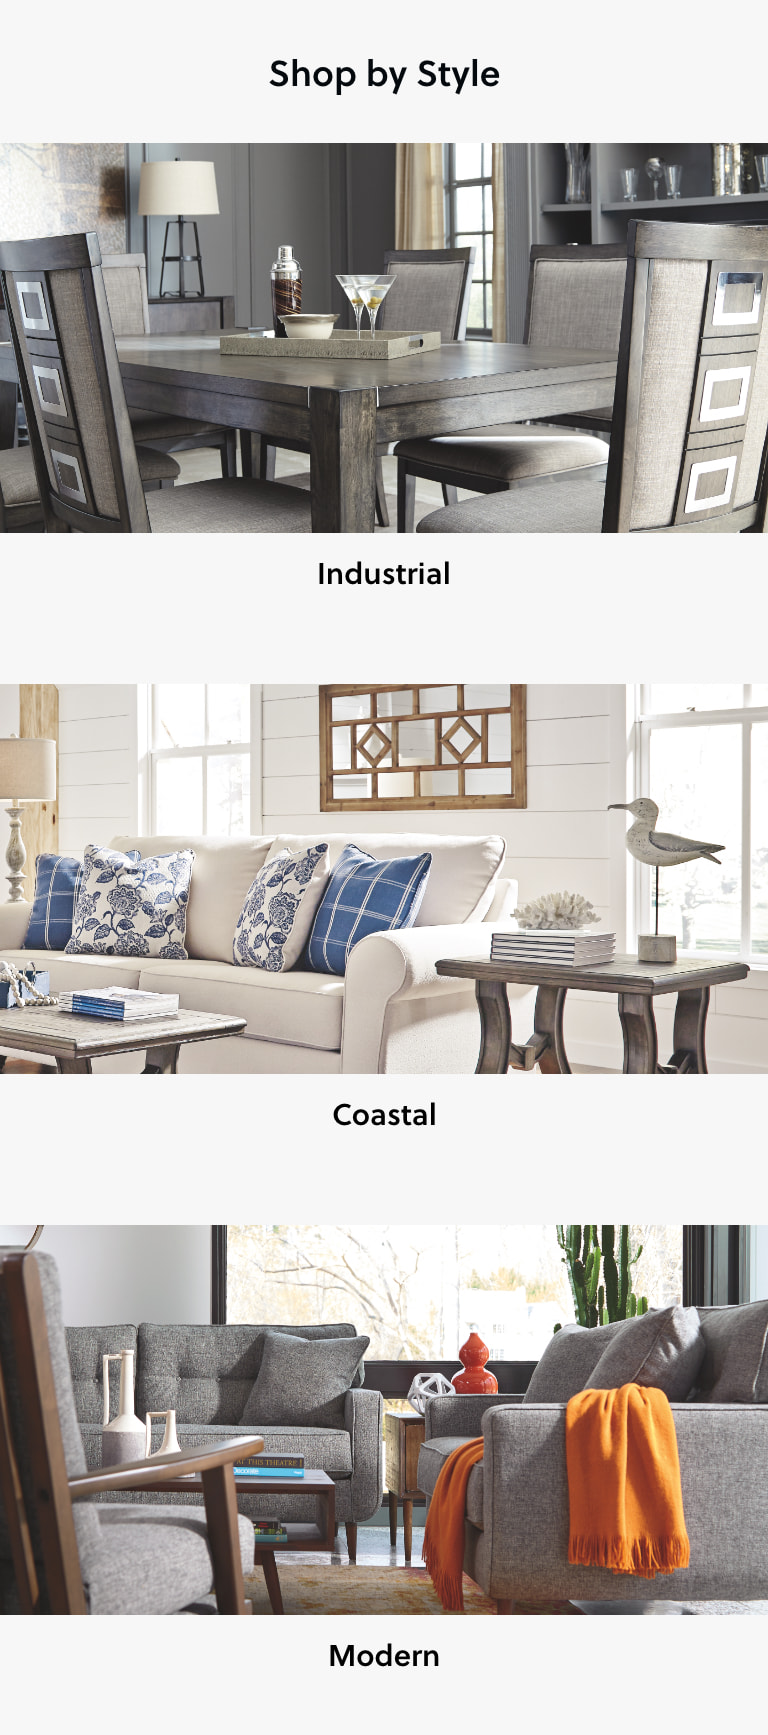 Shop Ashley Furniture HomeStore Online For Great Prices, Stylish  Furnishings And Home Decor. Free